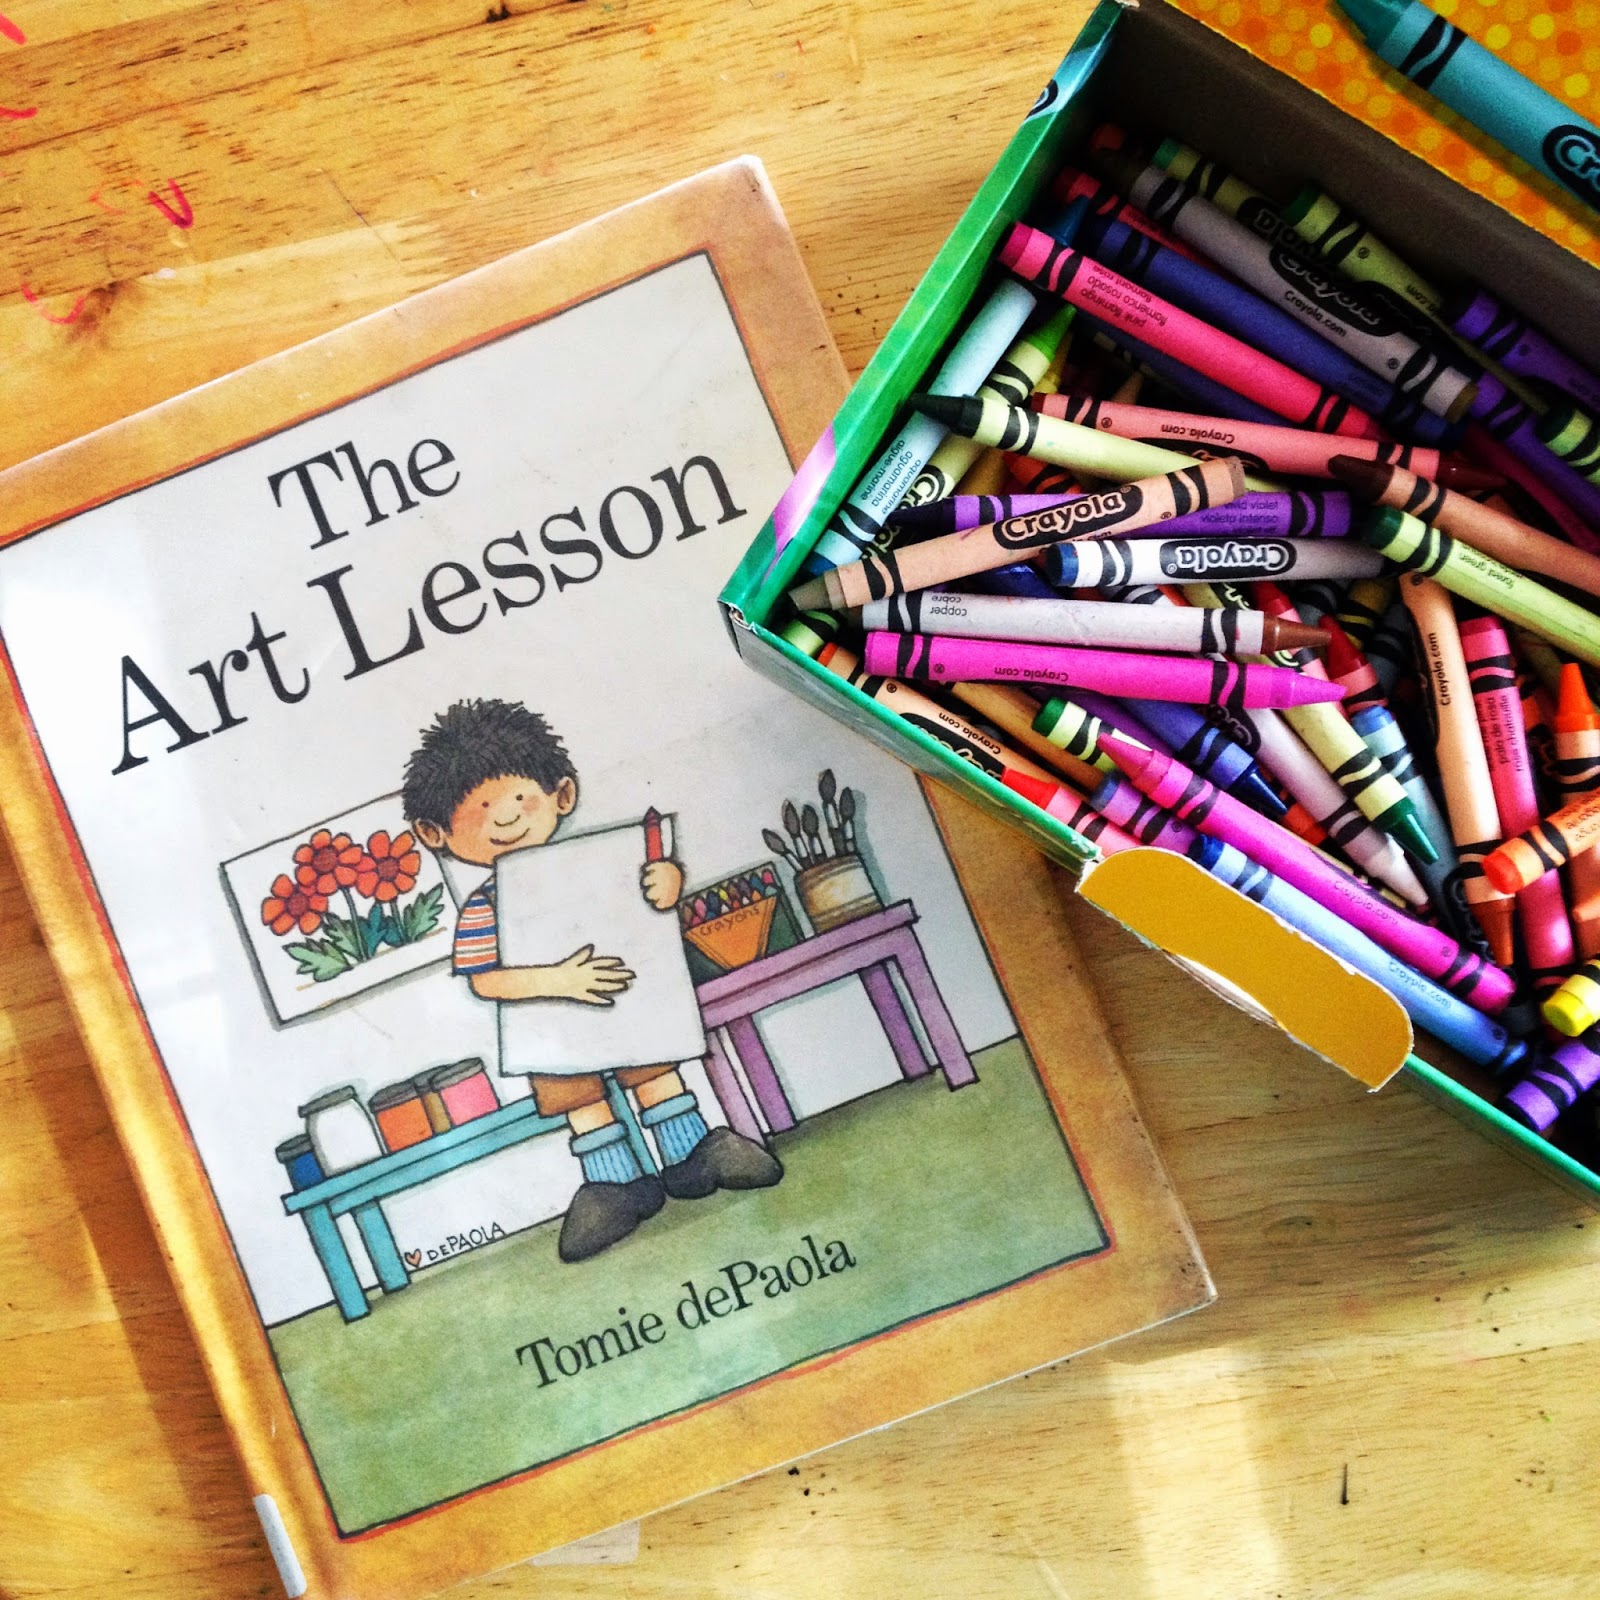 Pen Pals & Picture Books: The Art Lesson and New Crayons